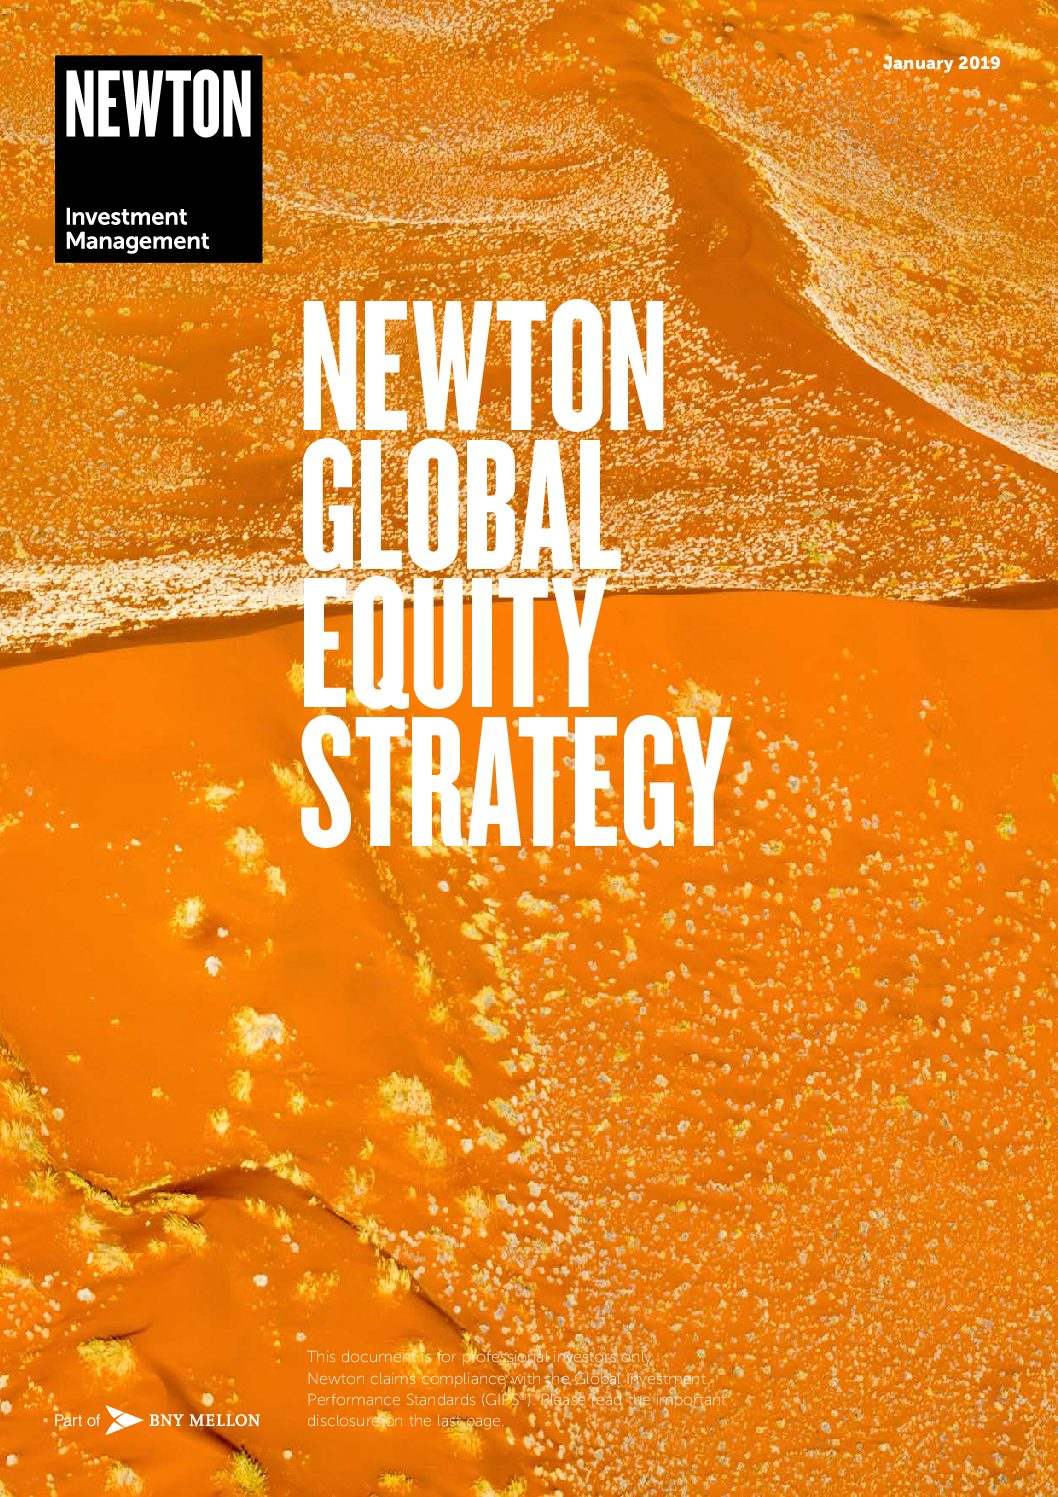 Global Equity brochure